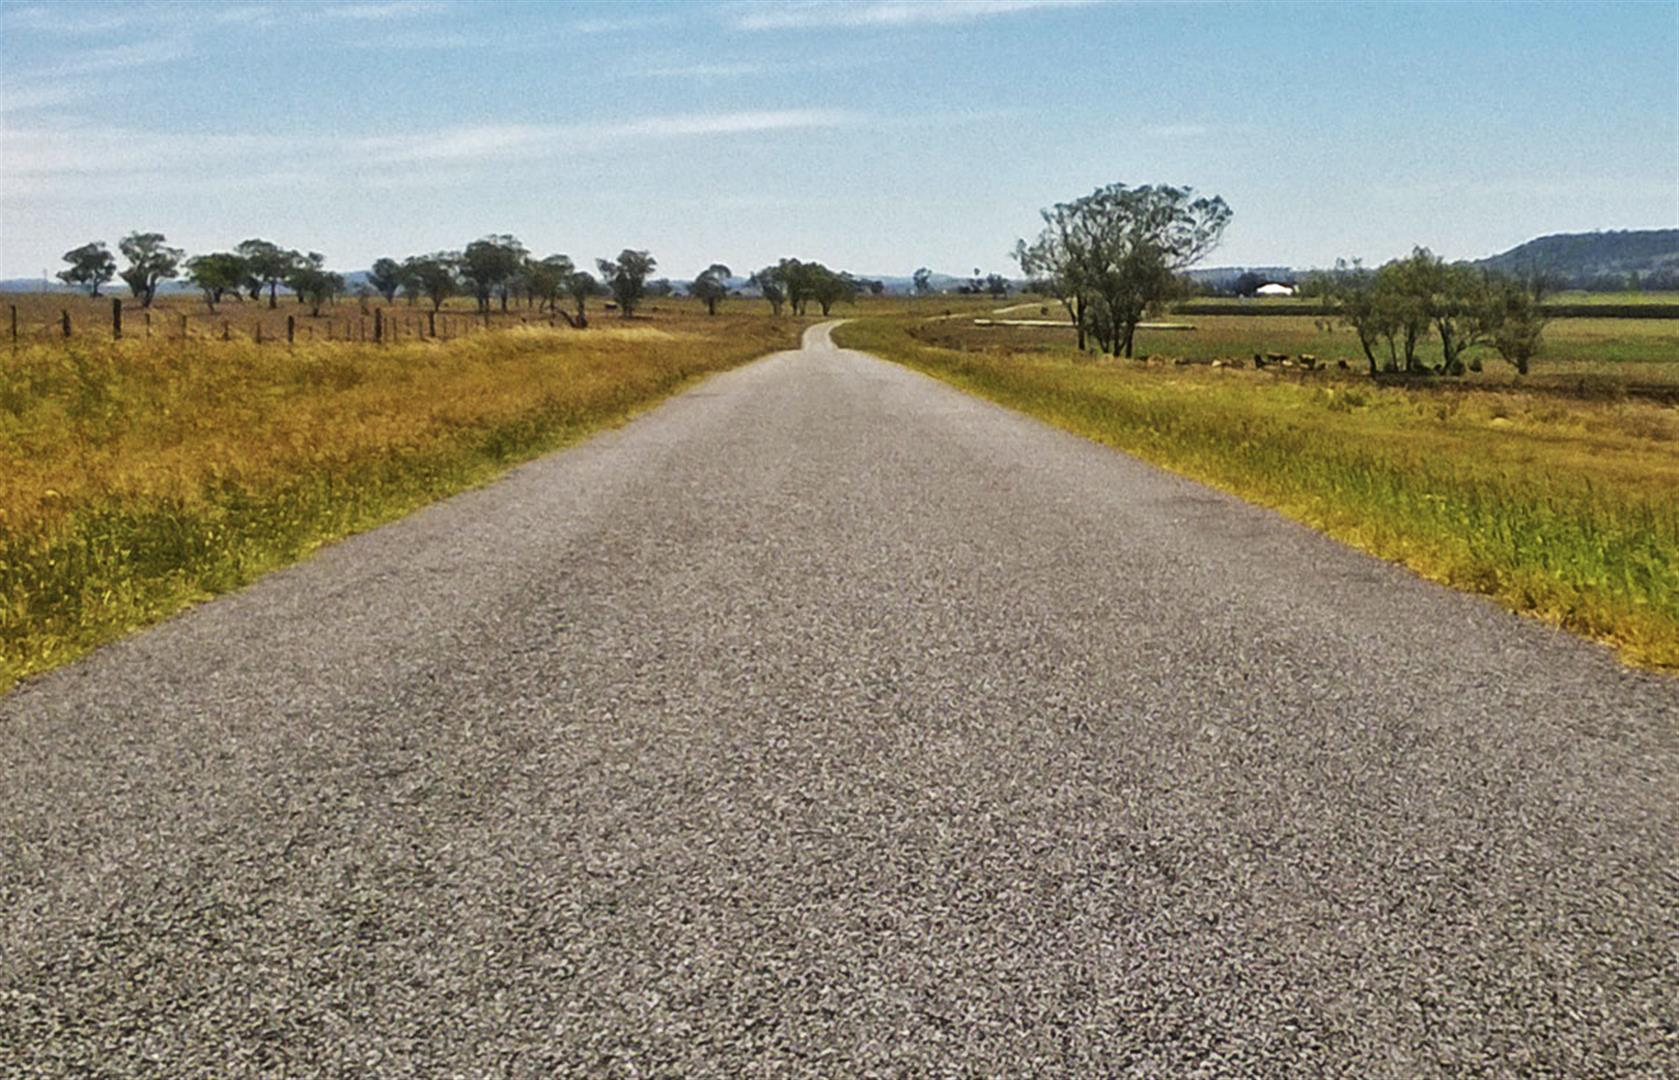 The road to Goomburra.